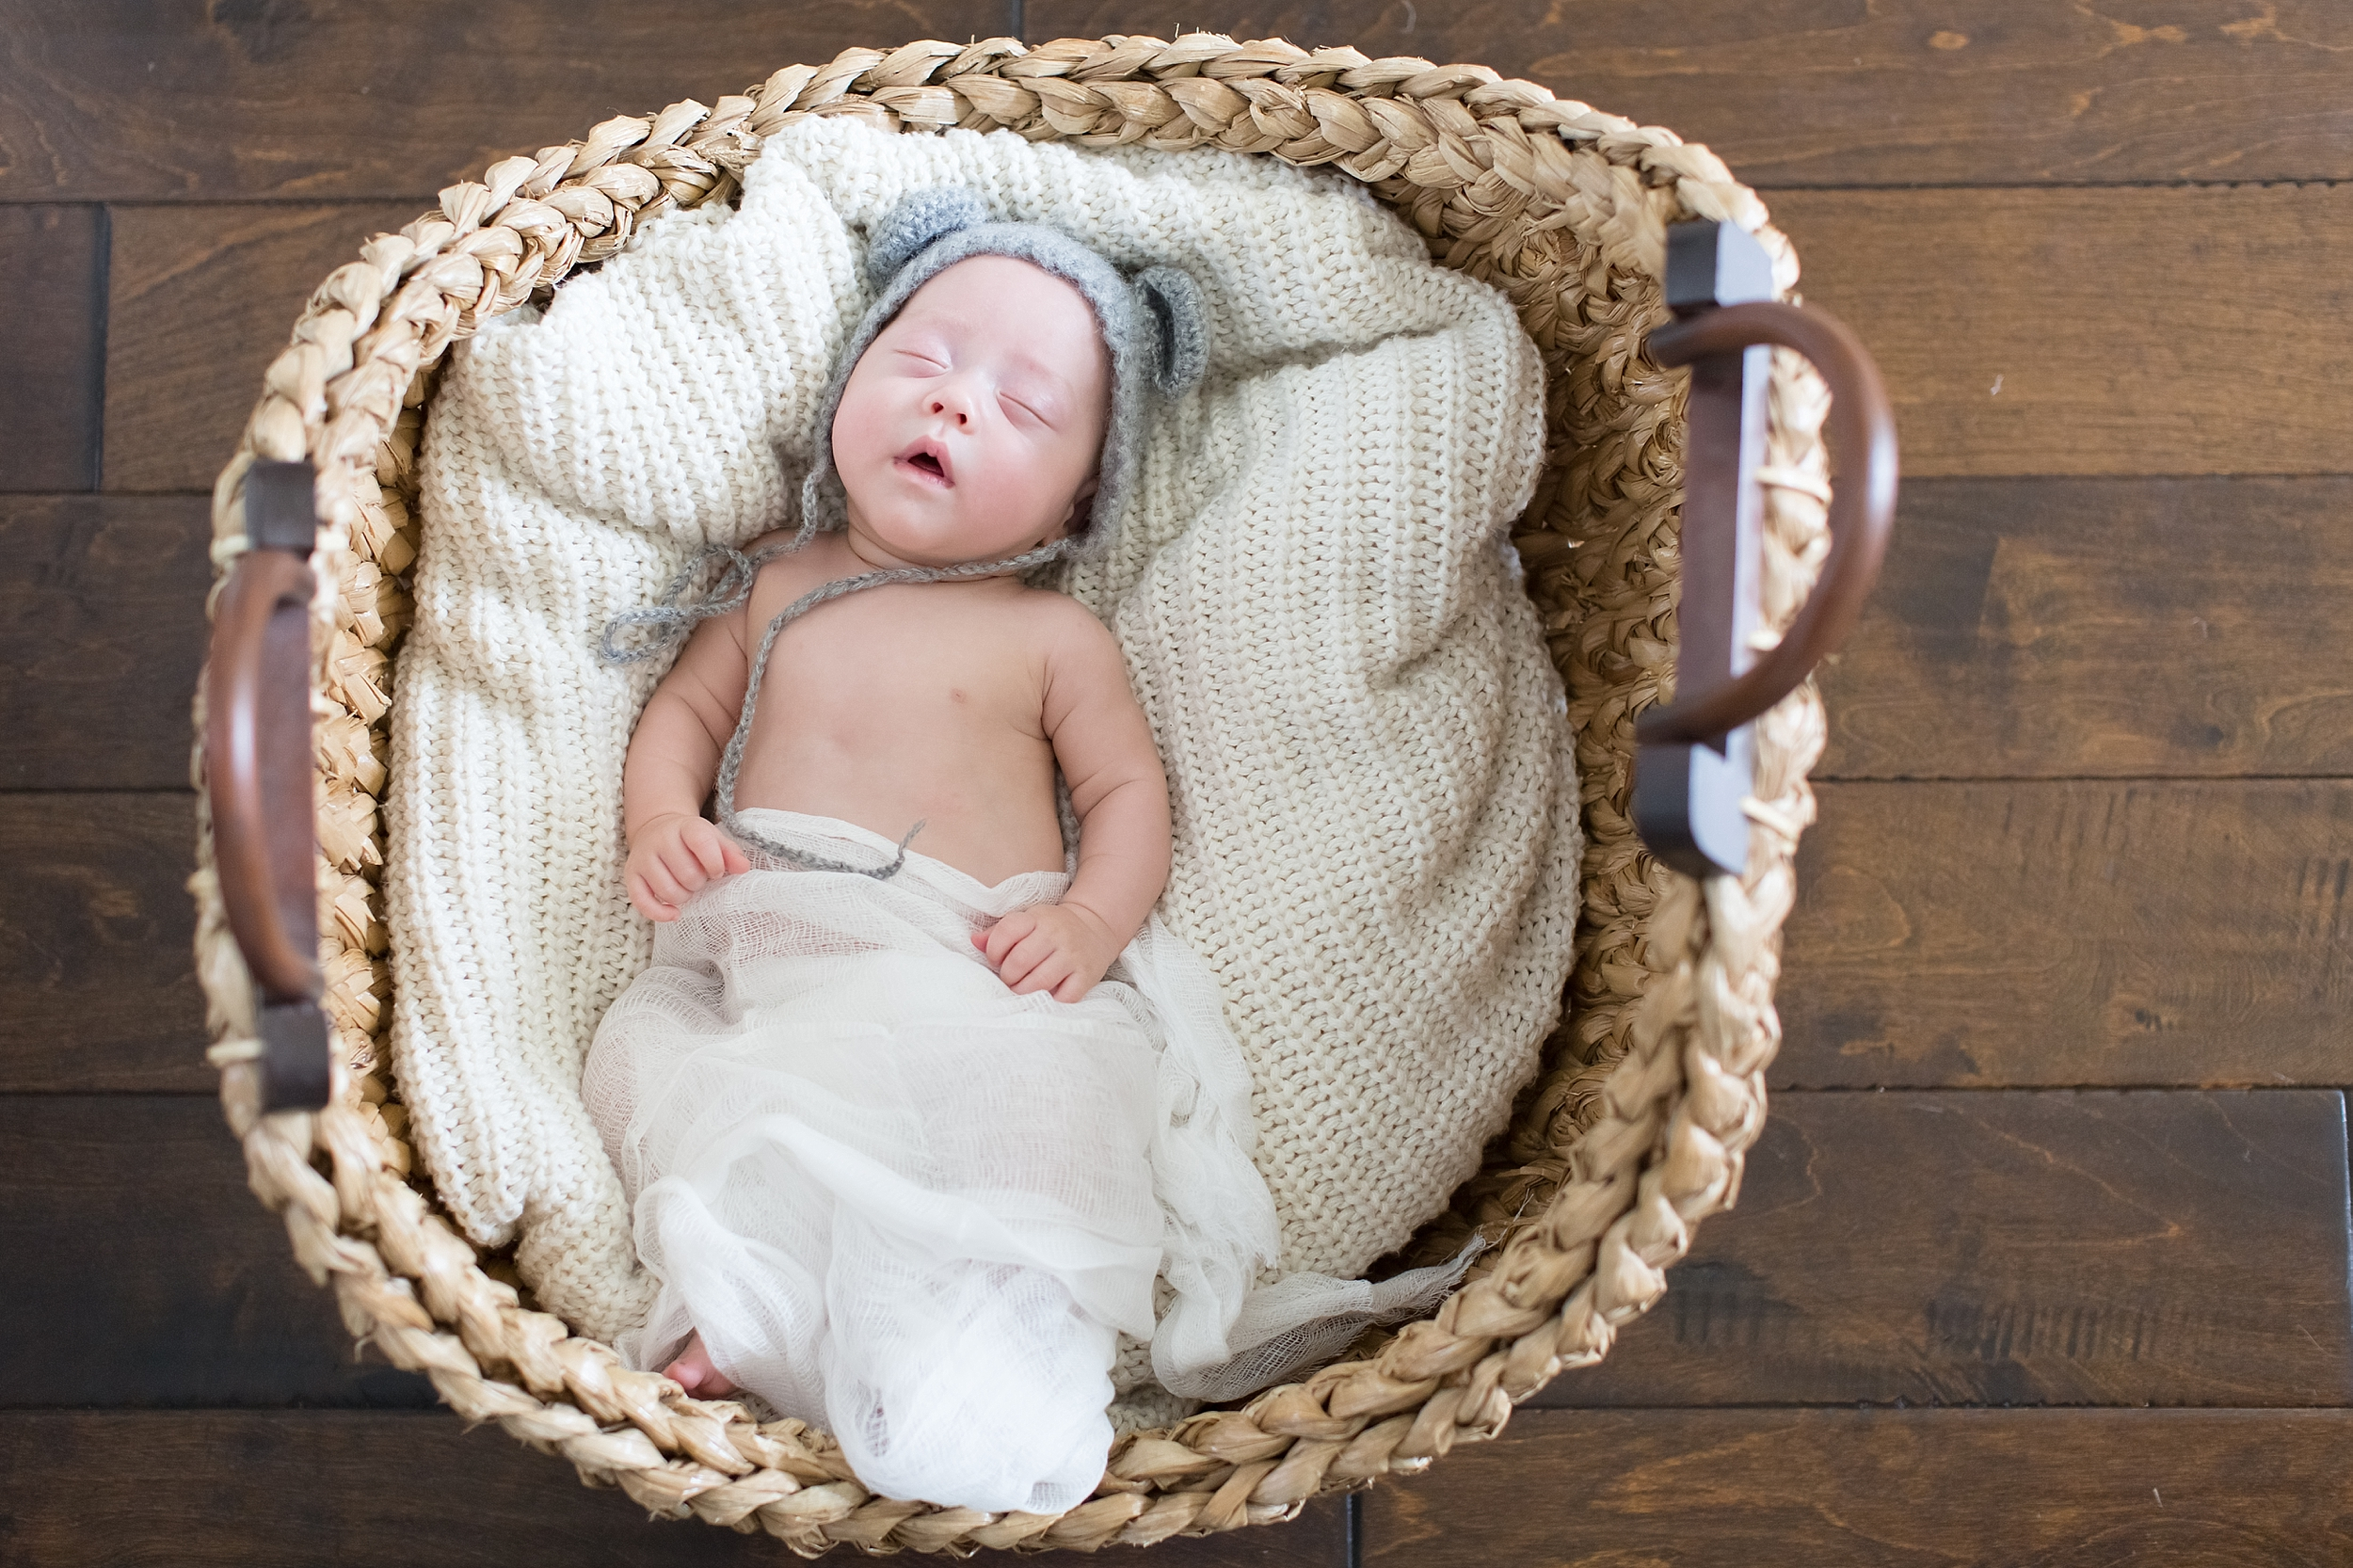 Landon-Schneider-Photography-Newborn-Session-Texas_0041.jpg